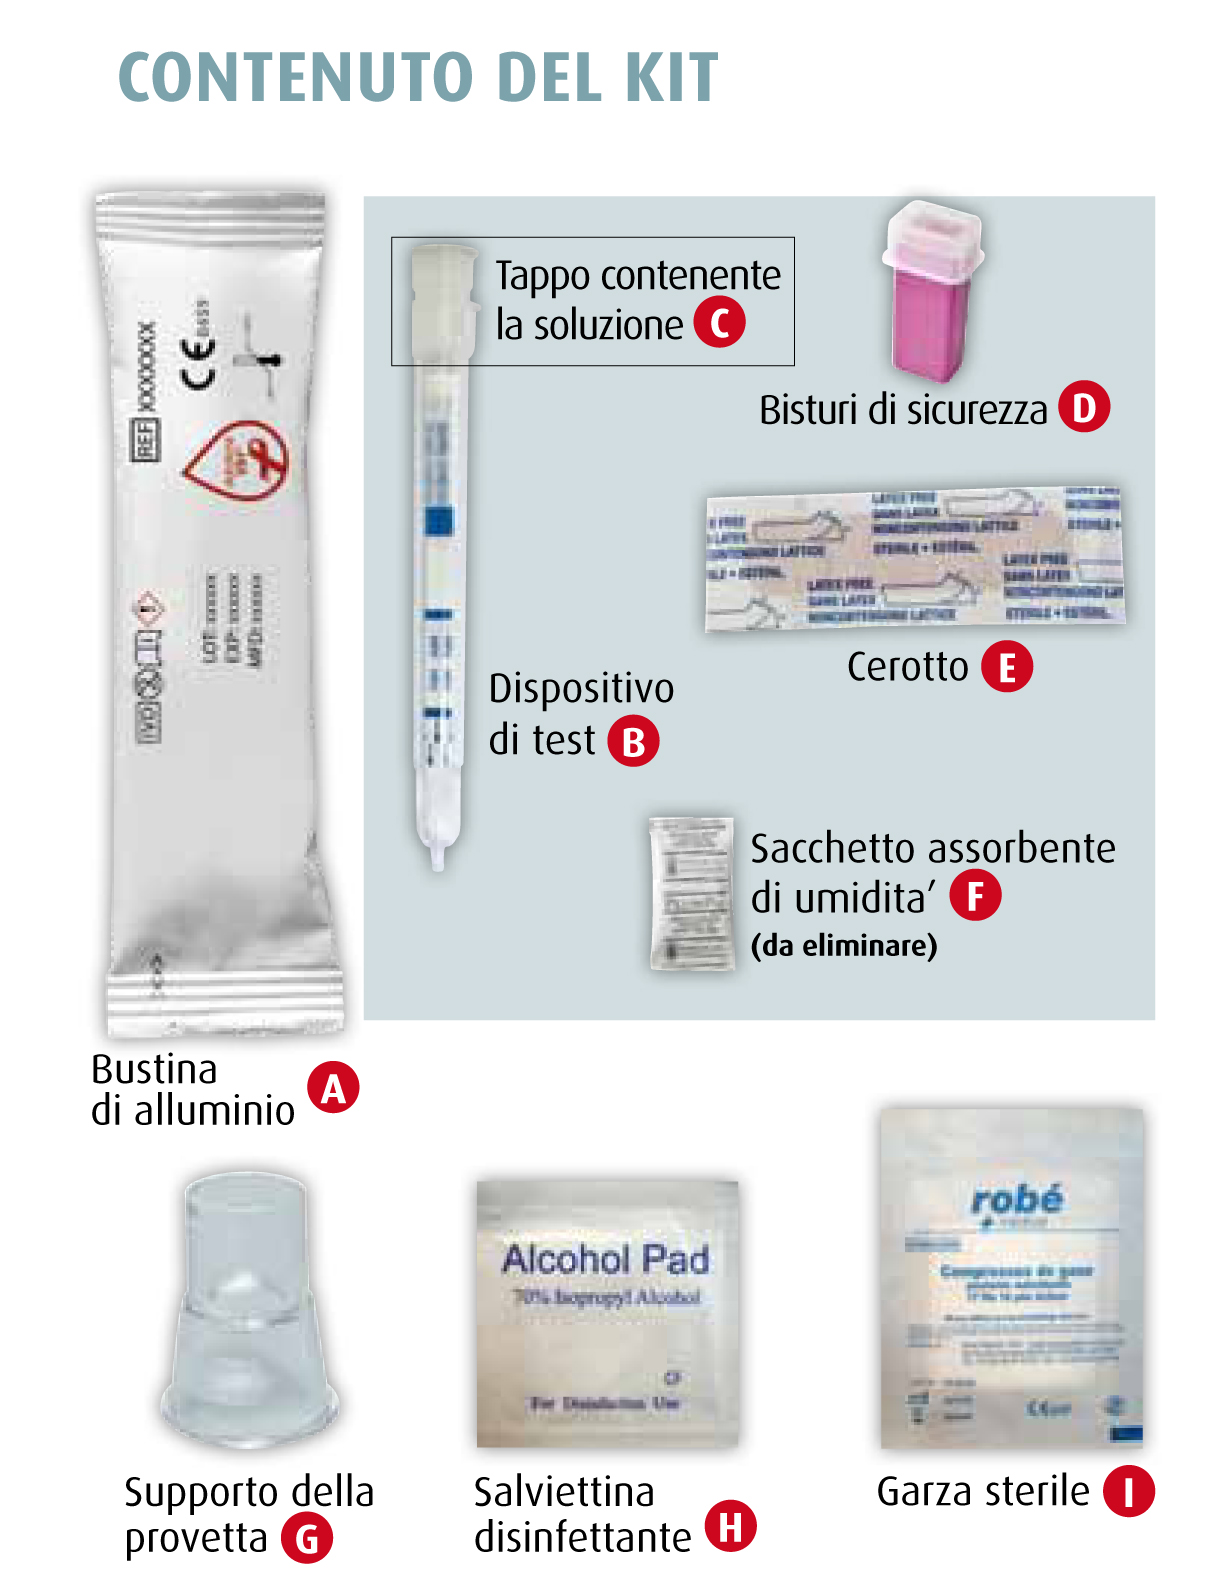 Contenuto del Kit per l'Auto Test o Self Test